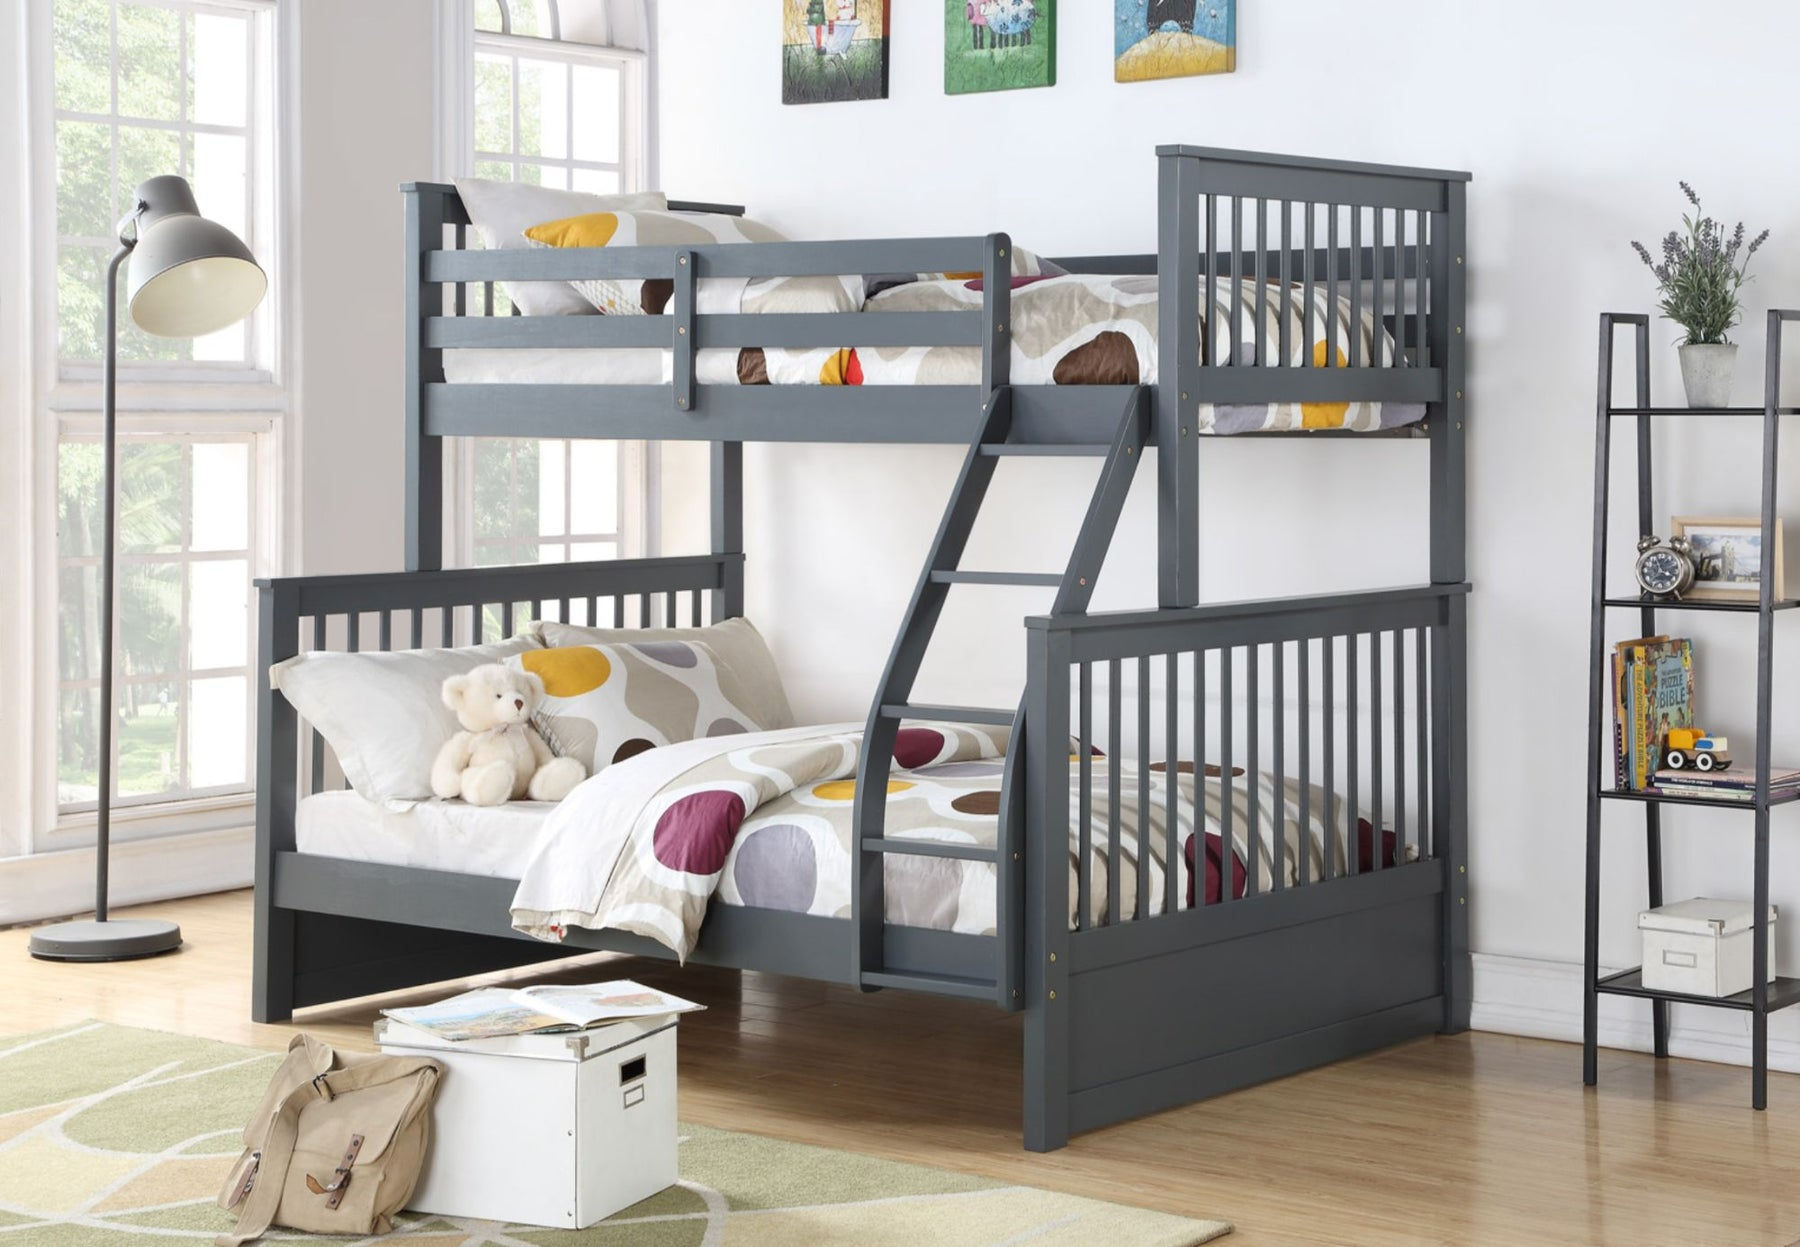 Jimmy Single-Double Wood Bunk Bed with Mattresses